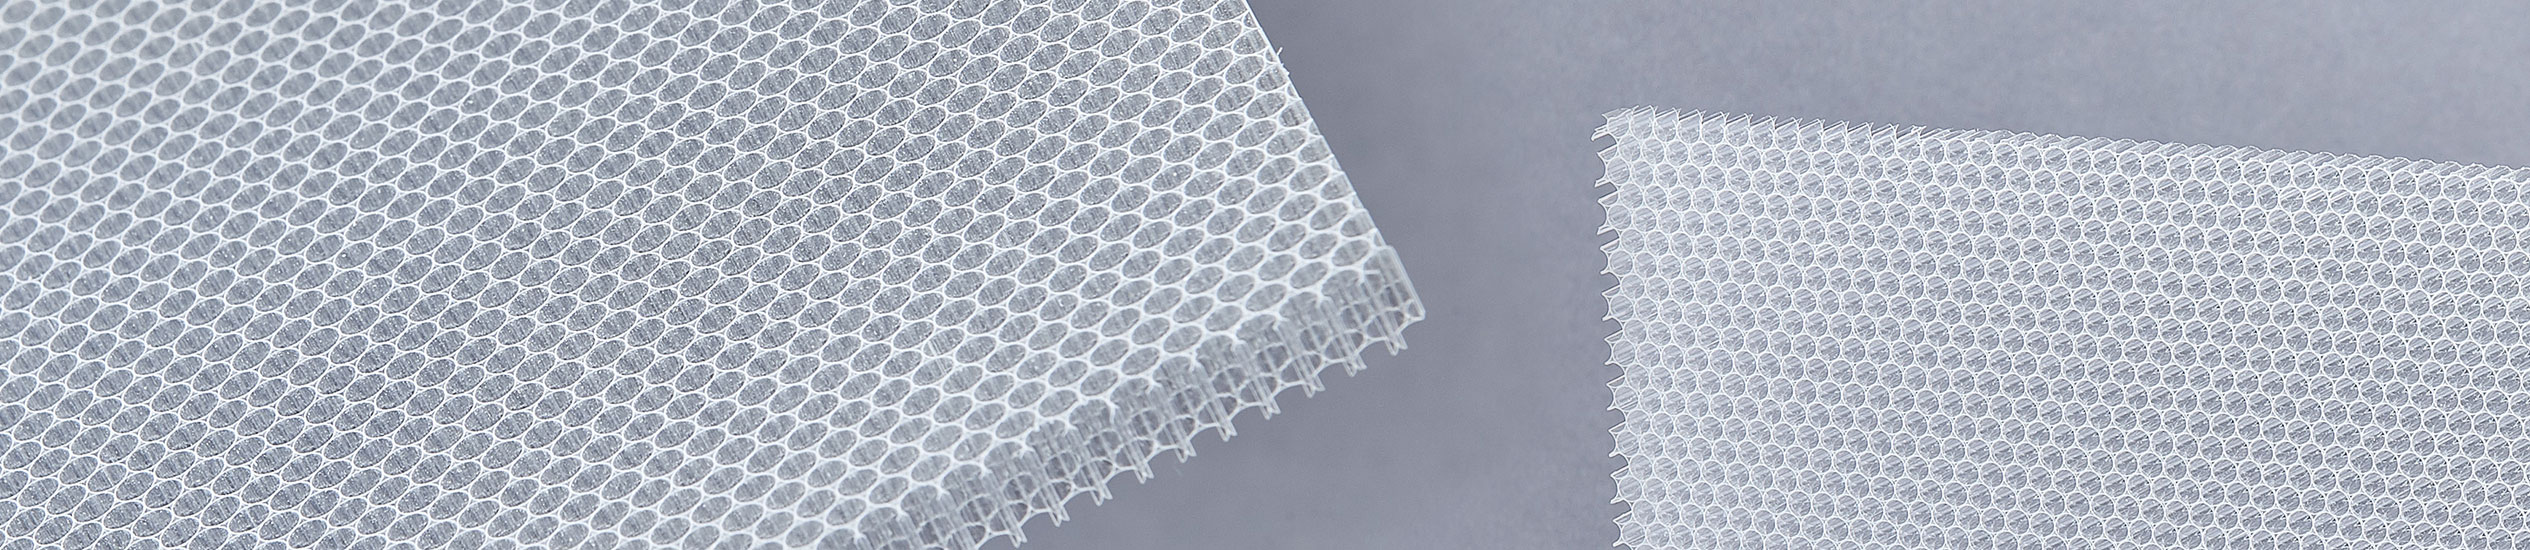 Polycarbonate honeycomb finds major applications in:deflectors for laminar-flow ventilation,commercial refrigeration,sterilized rooms,wind tunnels and climatic